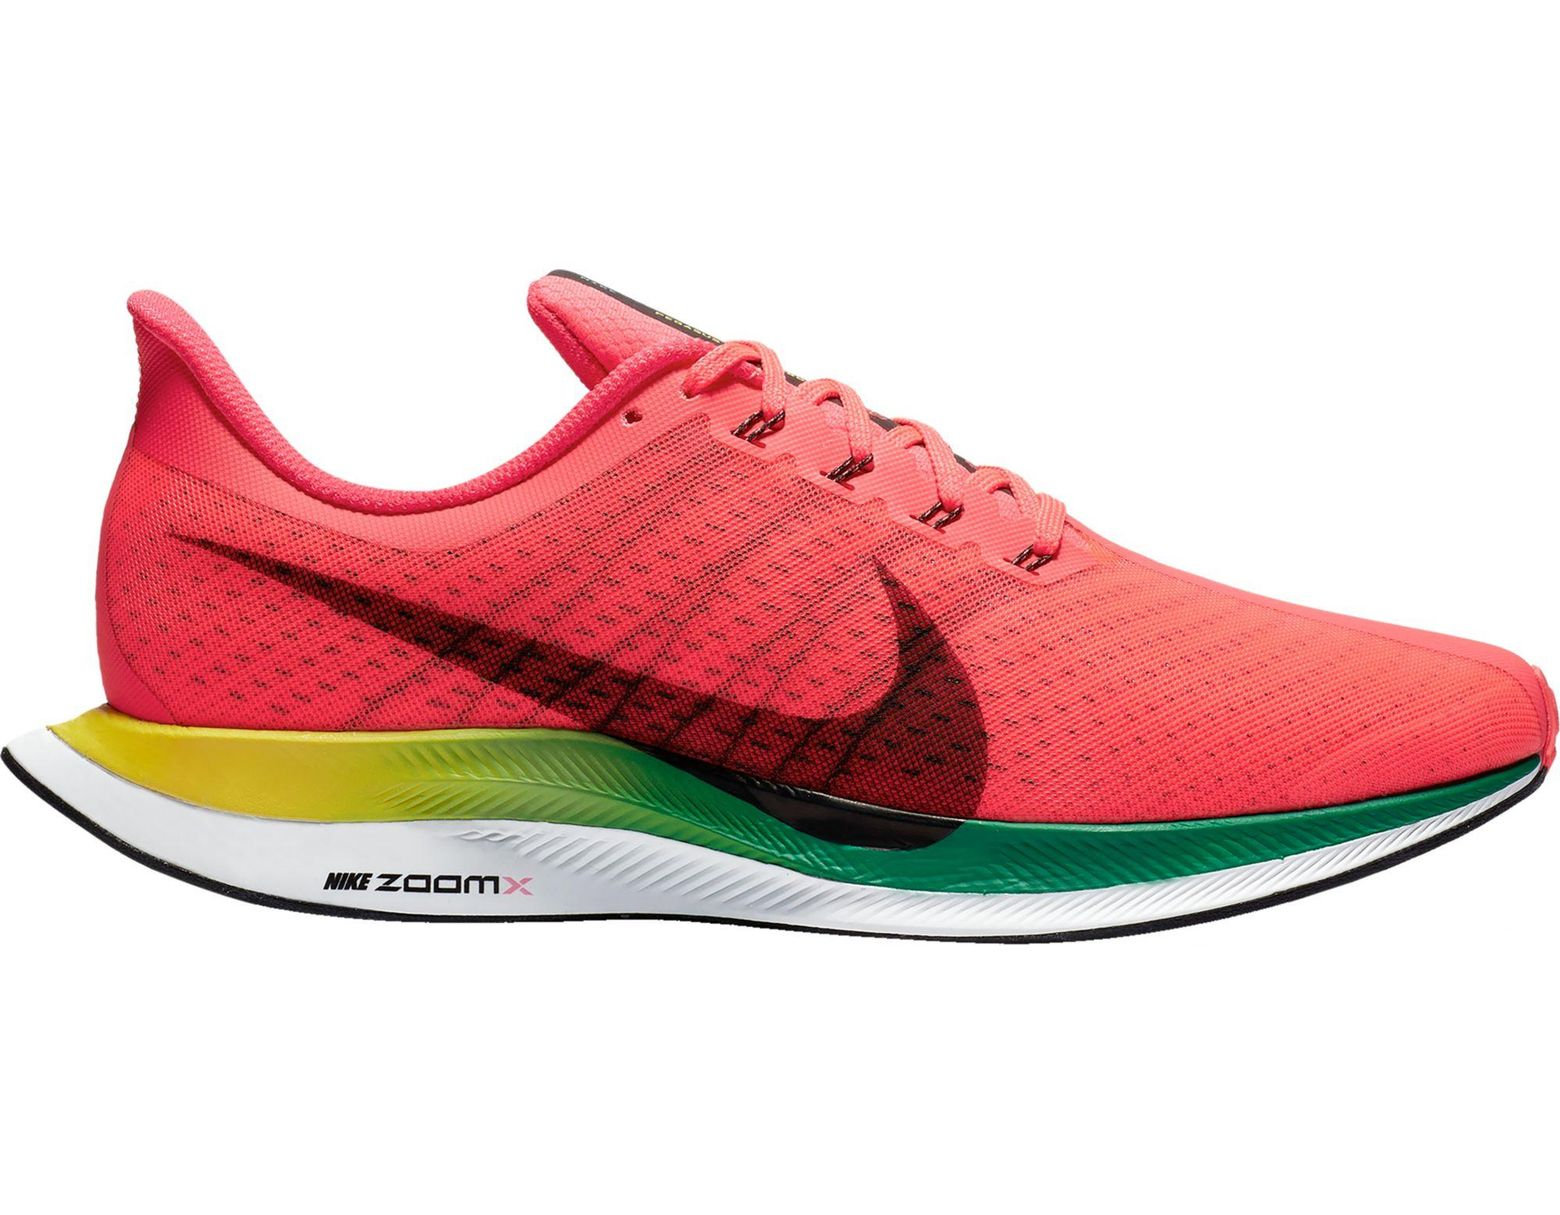 063b7edb10eaa Lyst - Nike Air Zoom Pegasus 35 Turbo Running Shoes in Red for Men